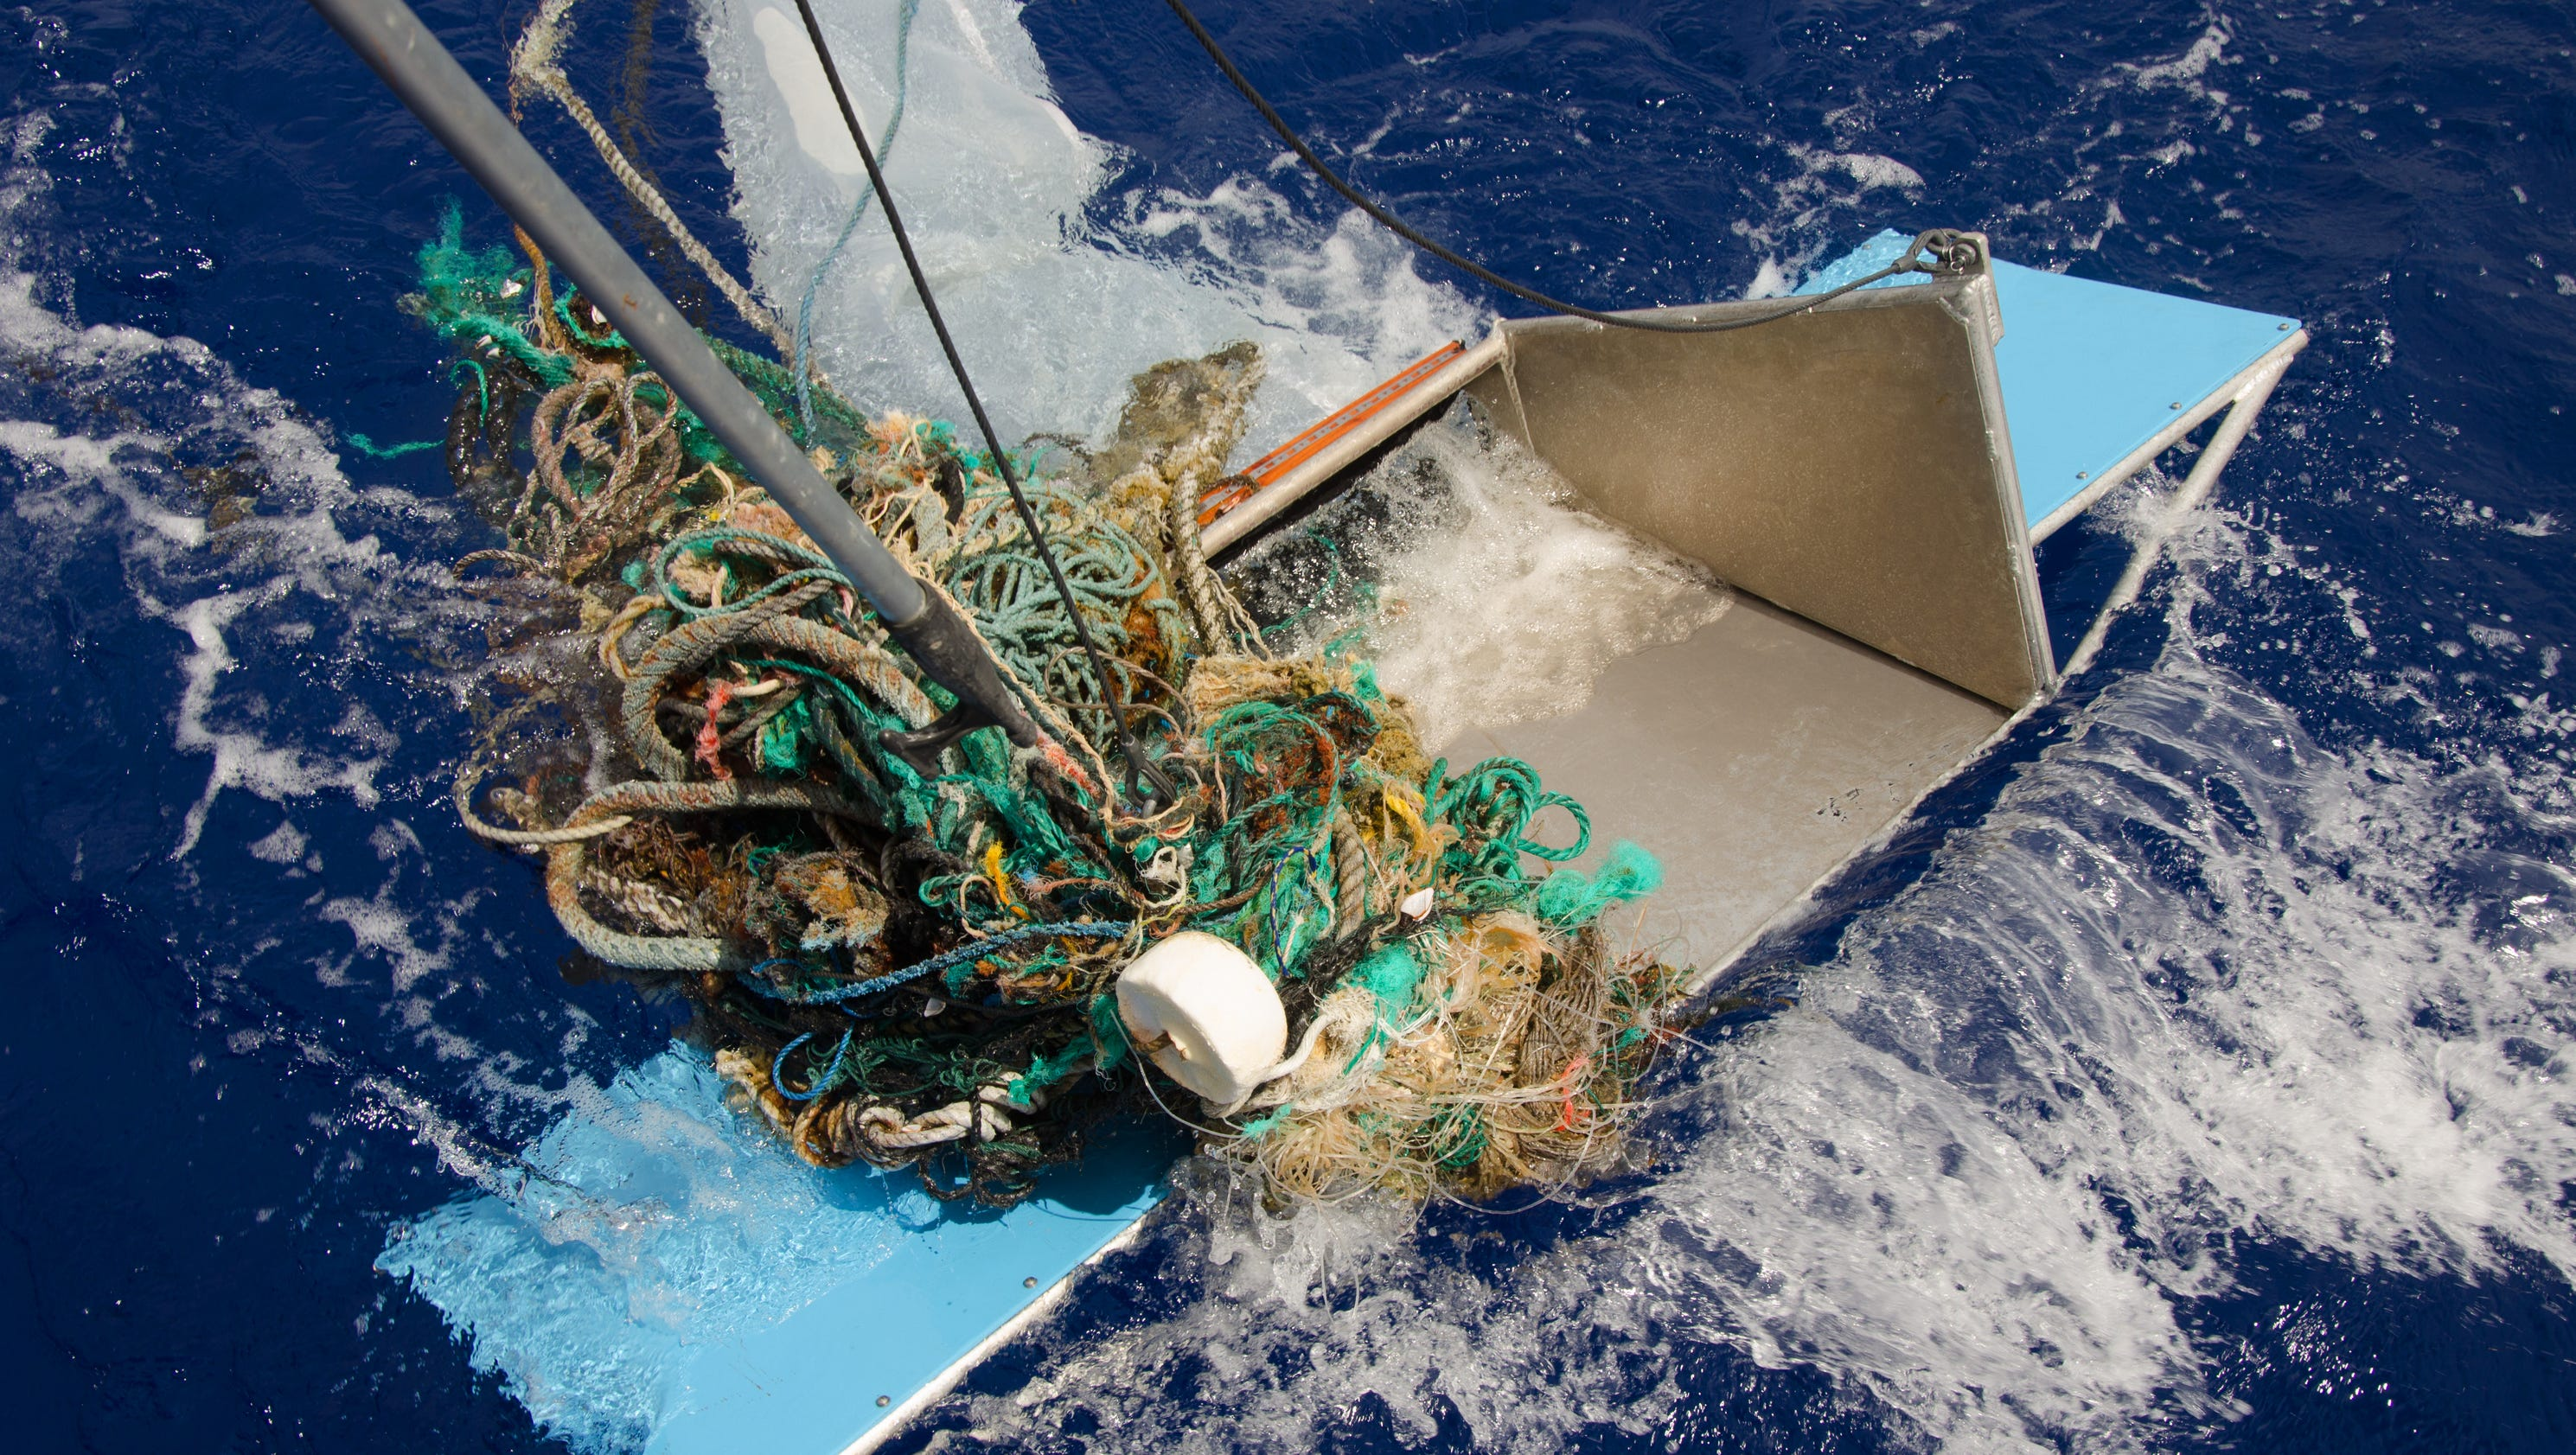 Largest collection of ocean garbage now twice size of Texas